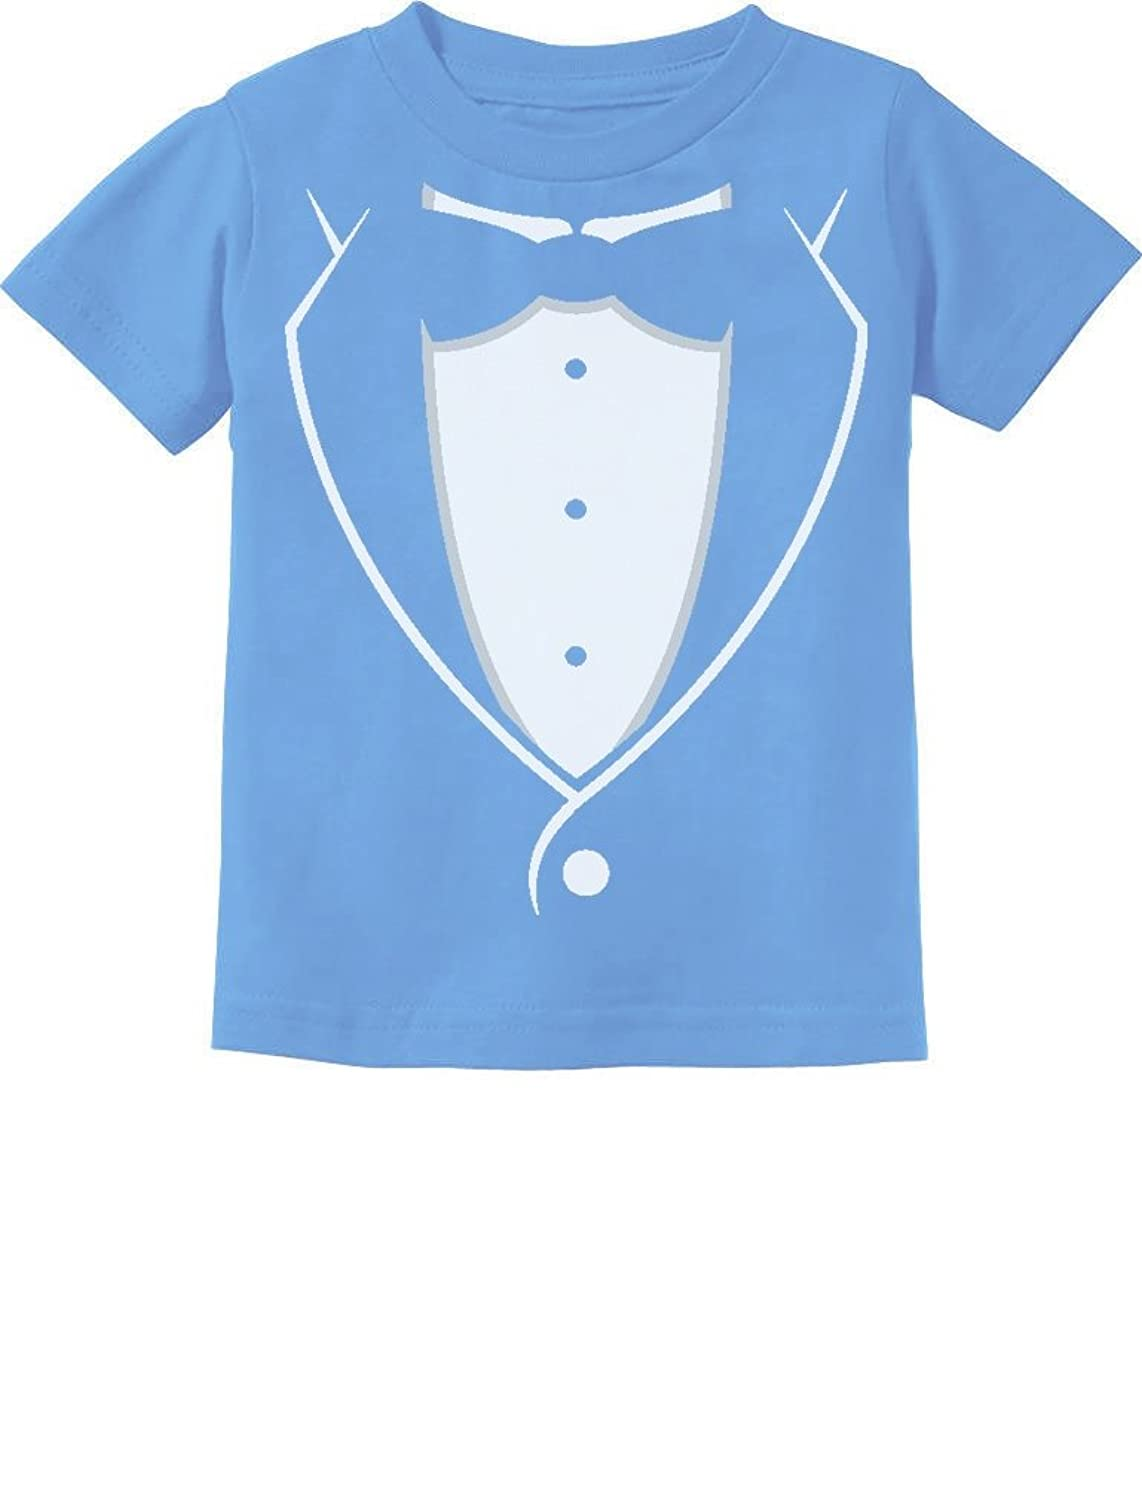 Amazon.com: Printed Tuxedo With Bow-Tie Suit Funny Gift For Boys ...